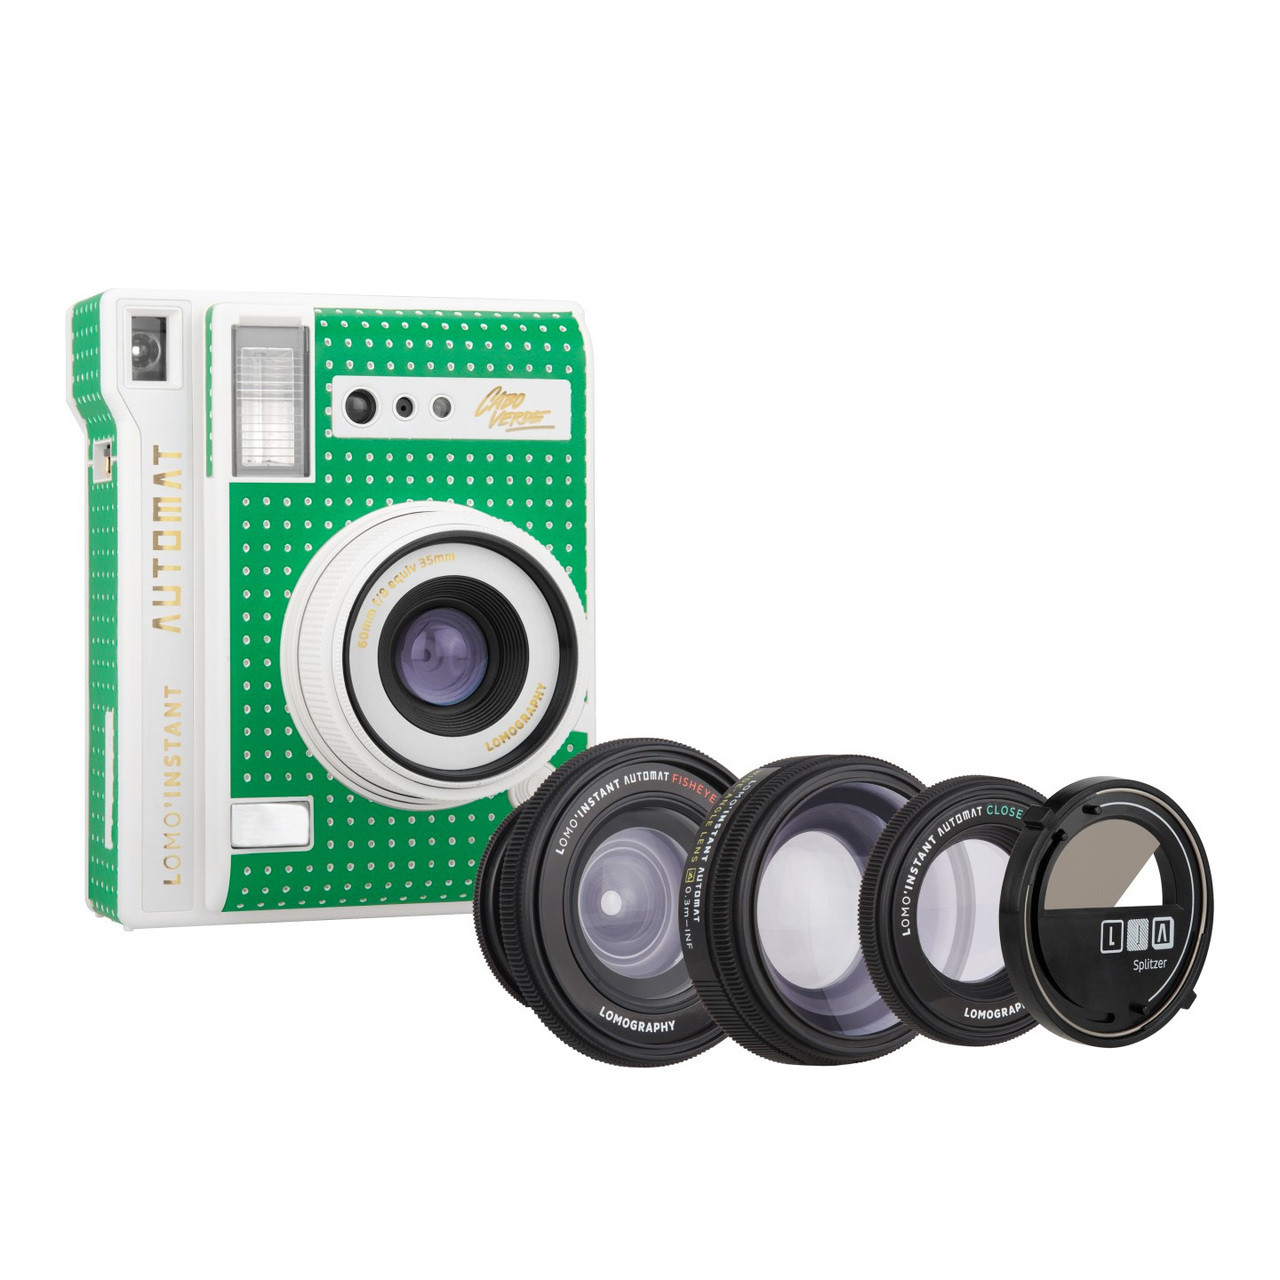 Lomoinstant Automat Camera Kit Cabo Verde Edition Dream In Plastic 3 Pack Fujifilm Instax Film Wide Twin